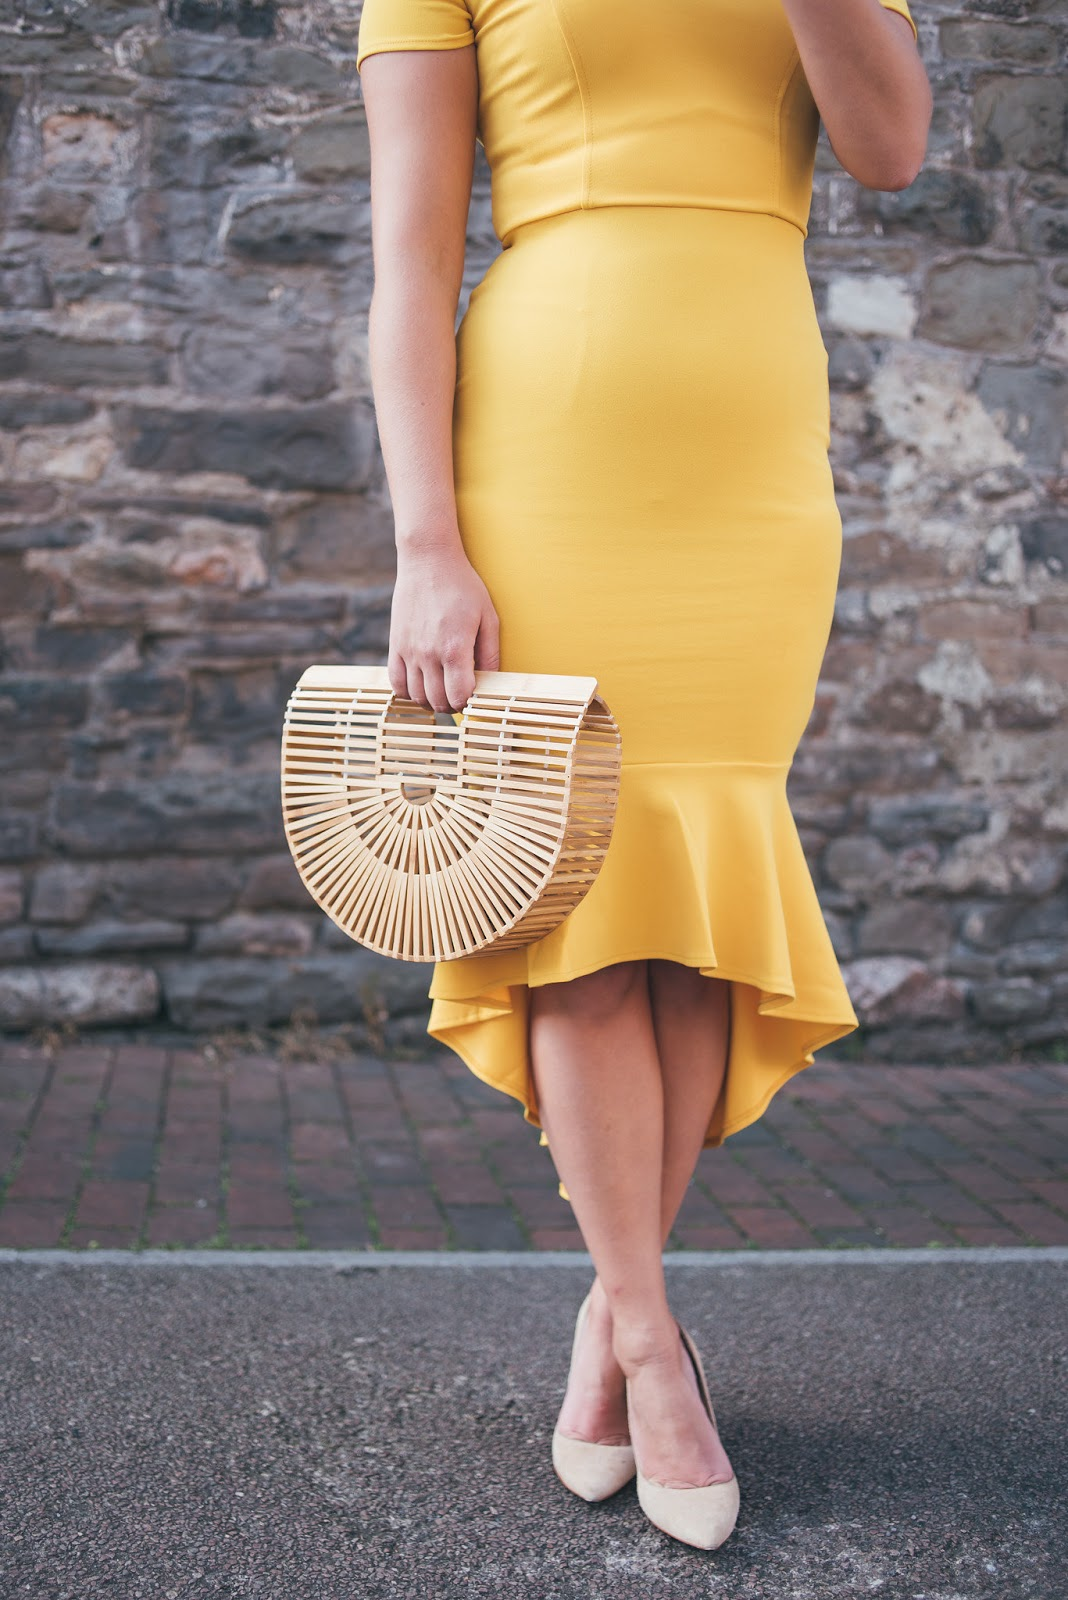 Fishtail of the Yellow John Zack Dress with Cult Gaia Dupe Bag